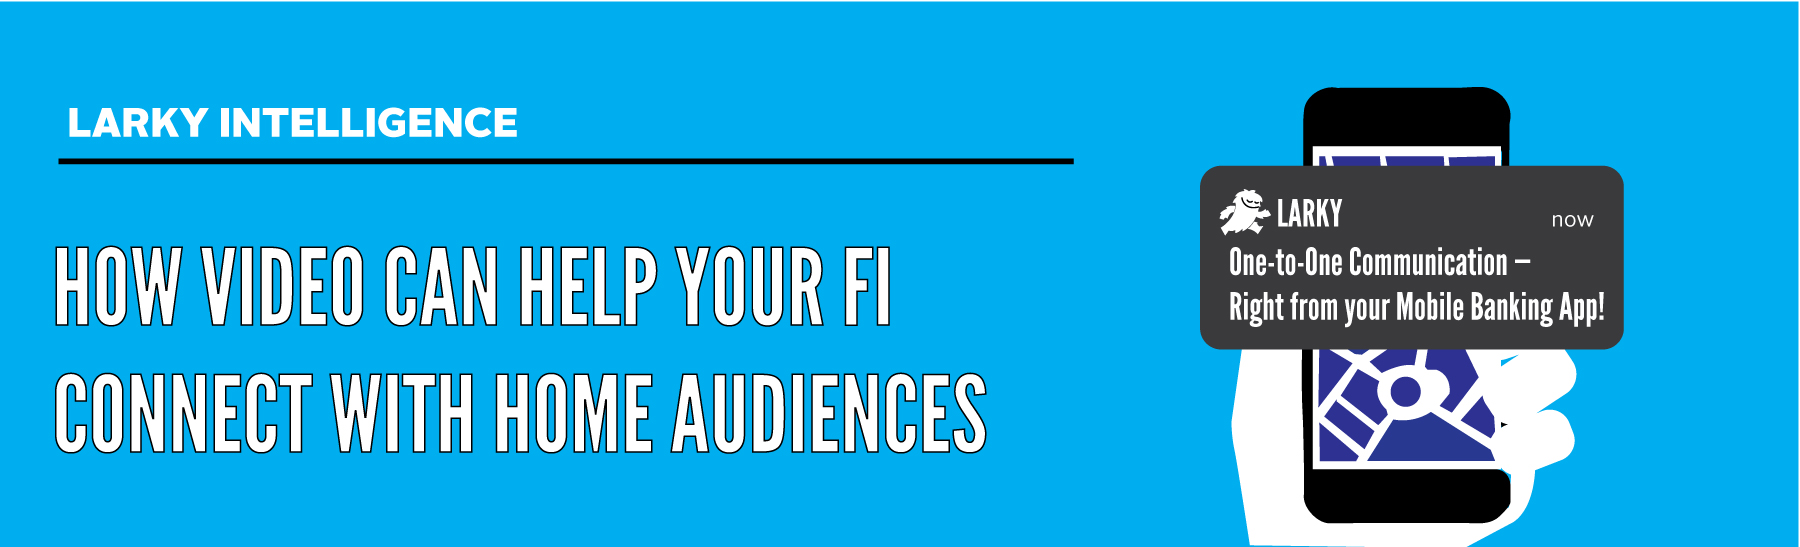 How Video Can Help Your FI Connect With Home Audiences